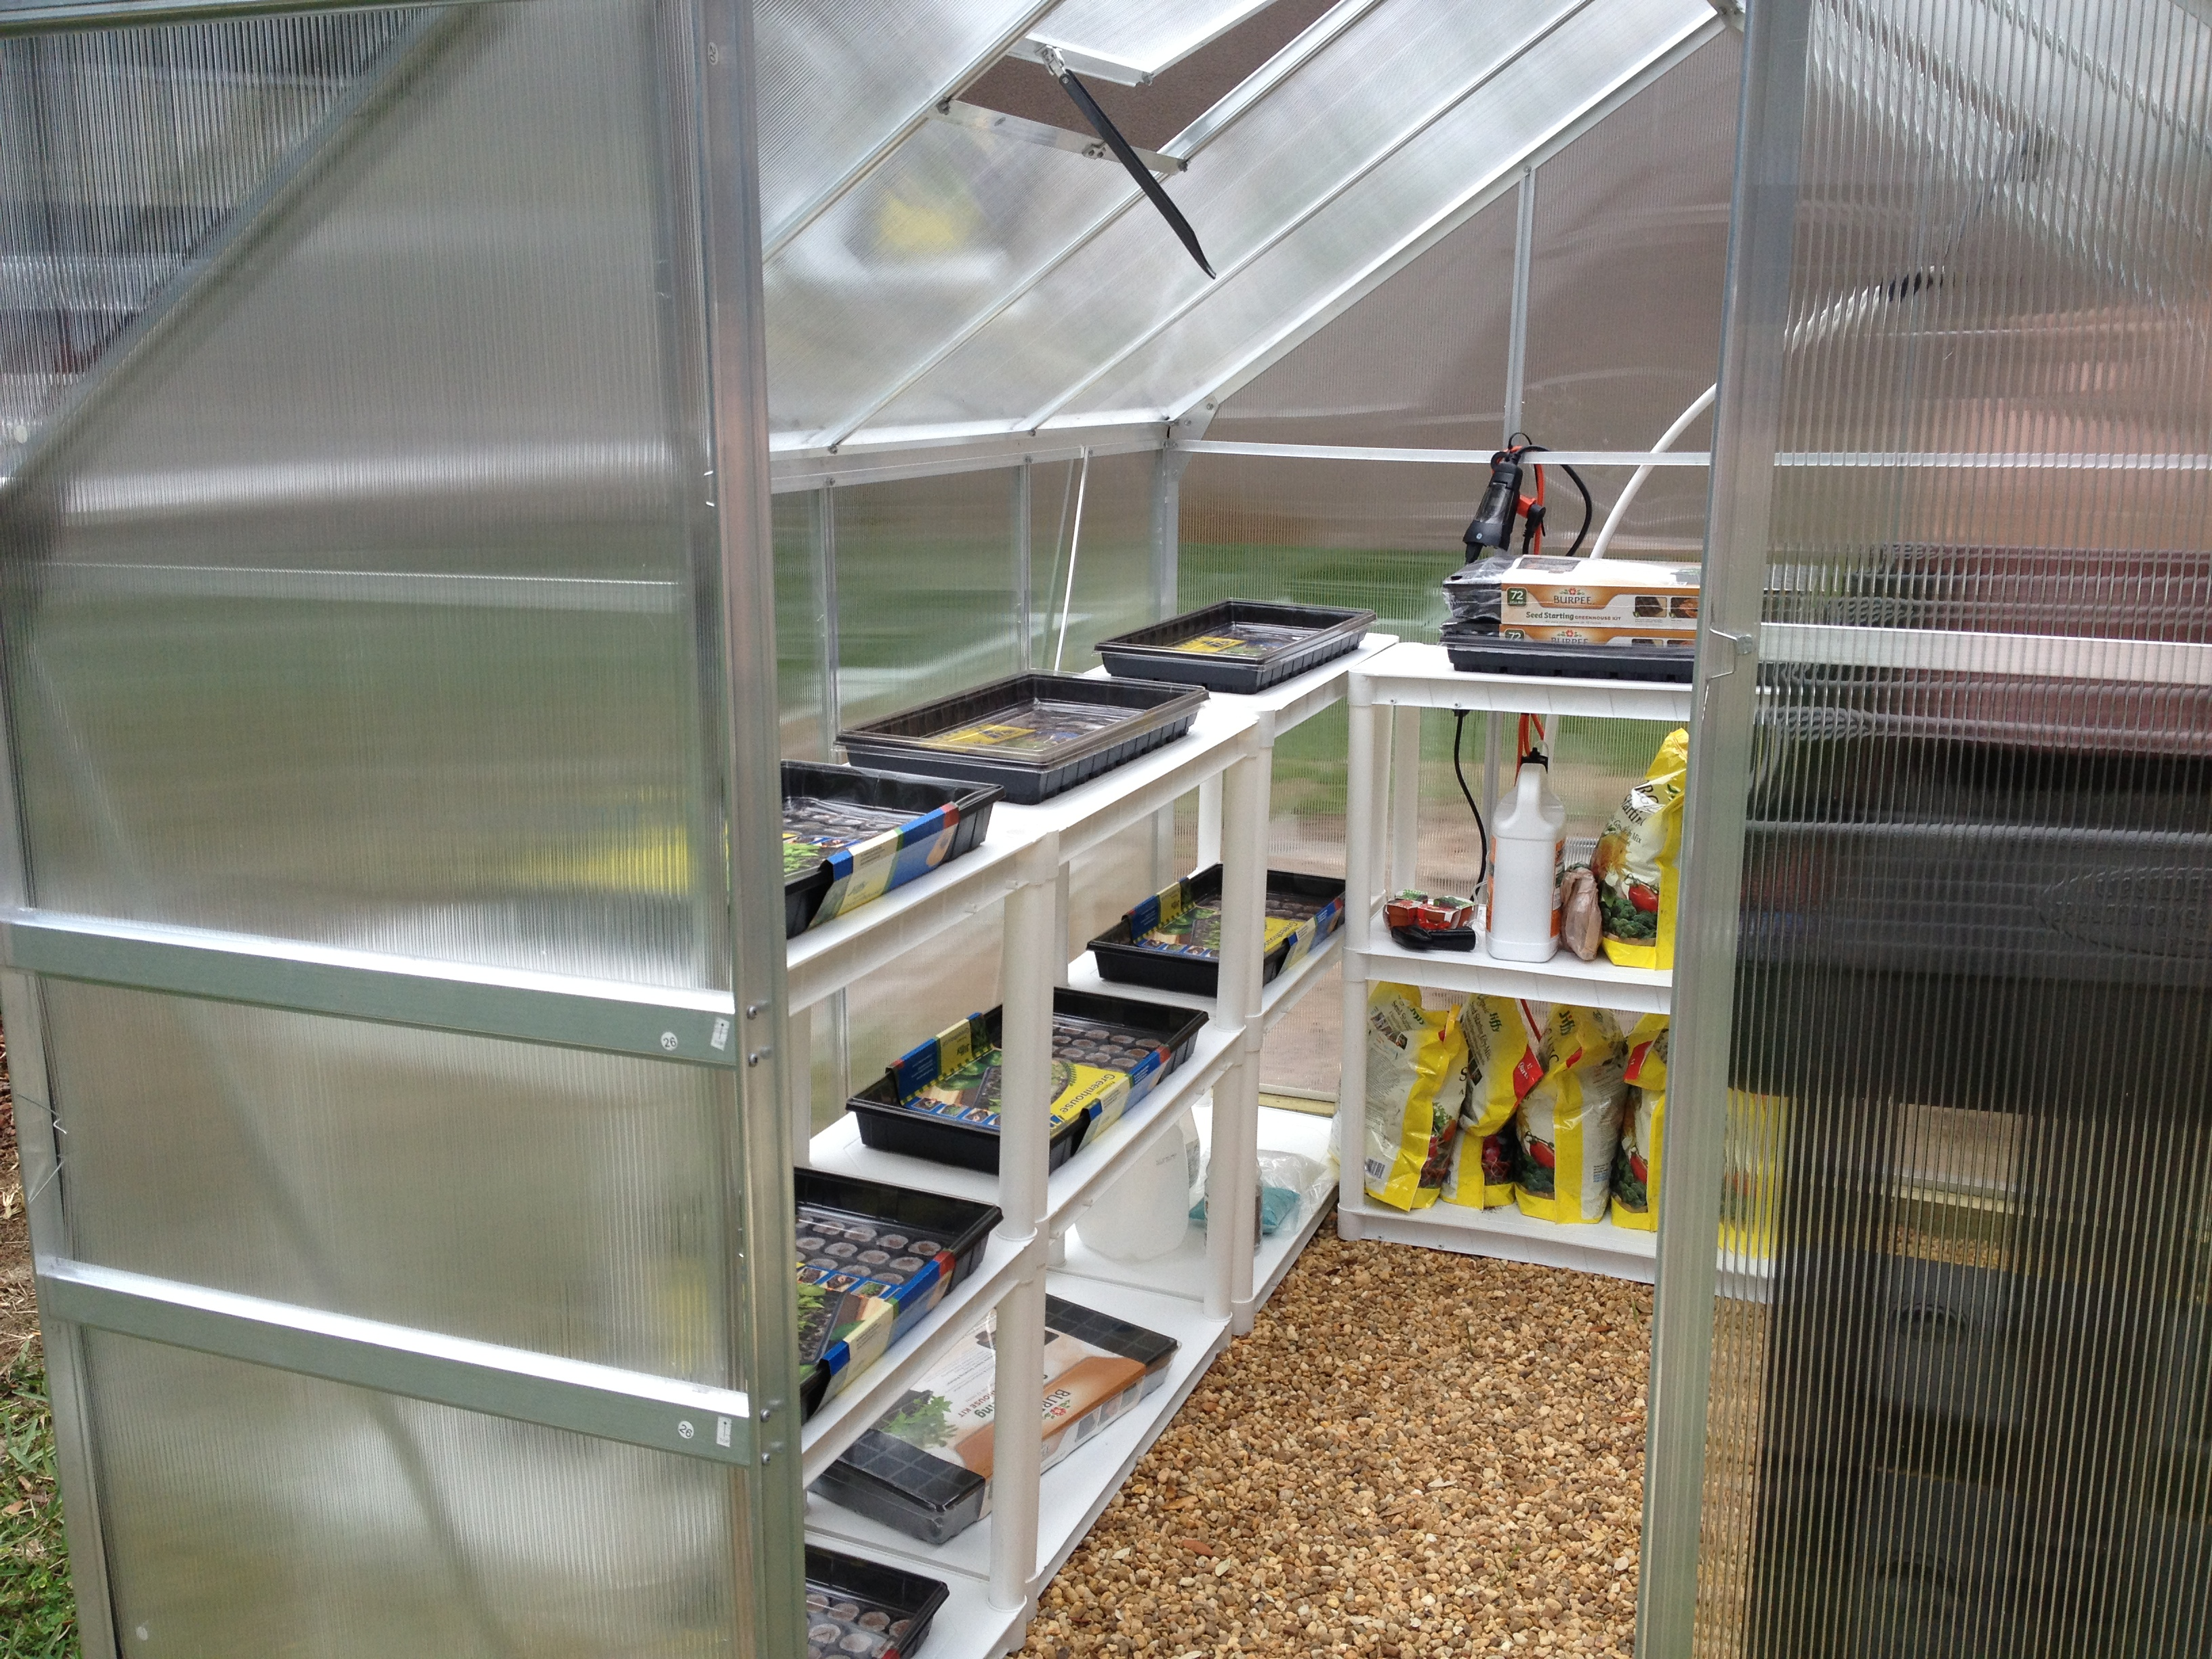 hydroponic and greenhouse install we performed backyard food